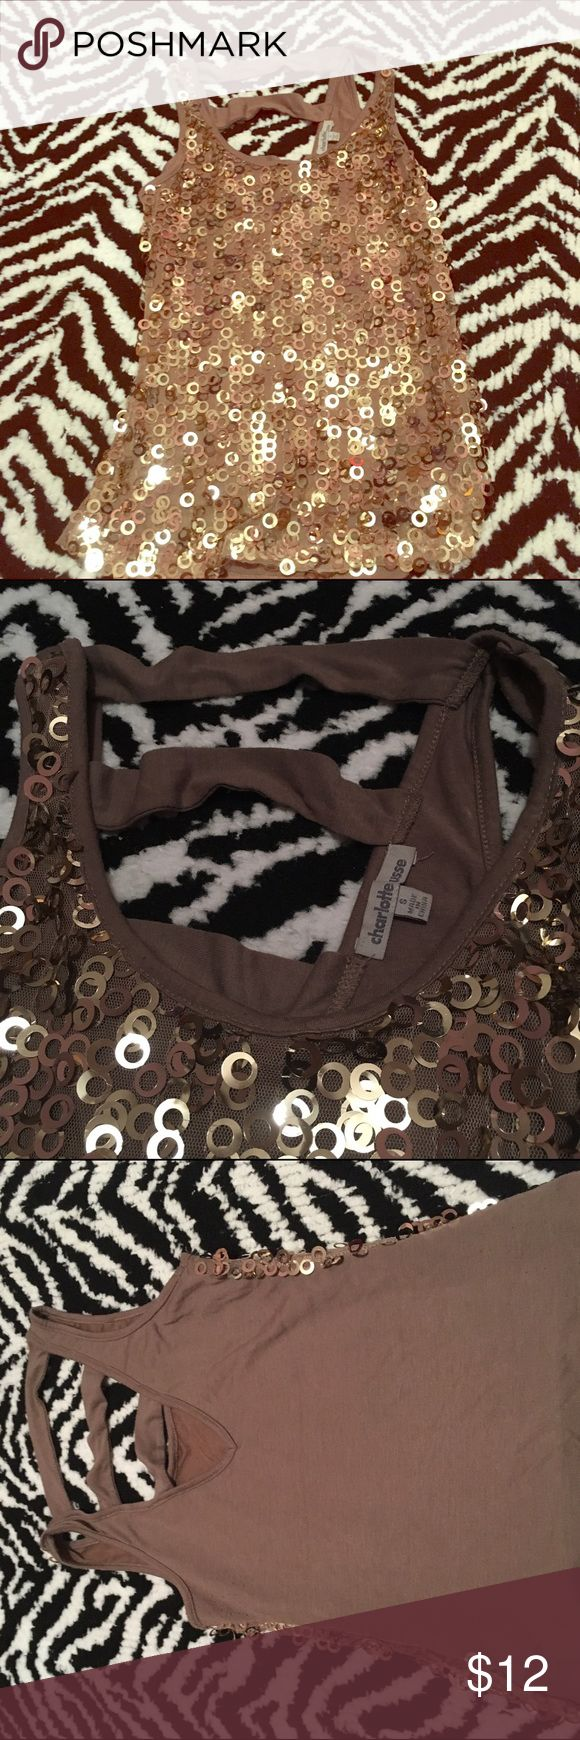 Charlotte rousse tank Gold sequin tank with cute opening in the back💕 Charlotte Russe Tops Tank Tops